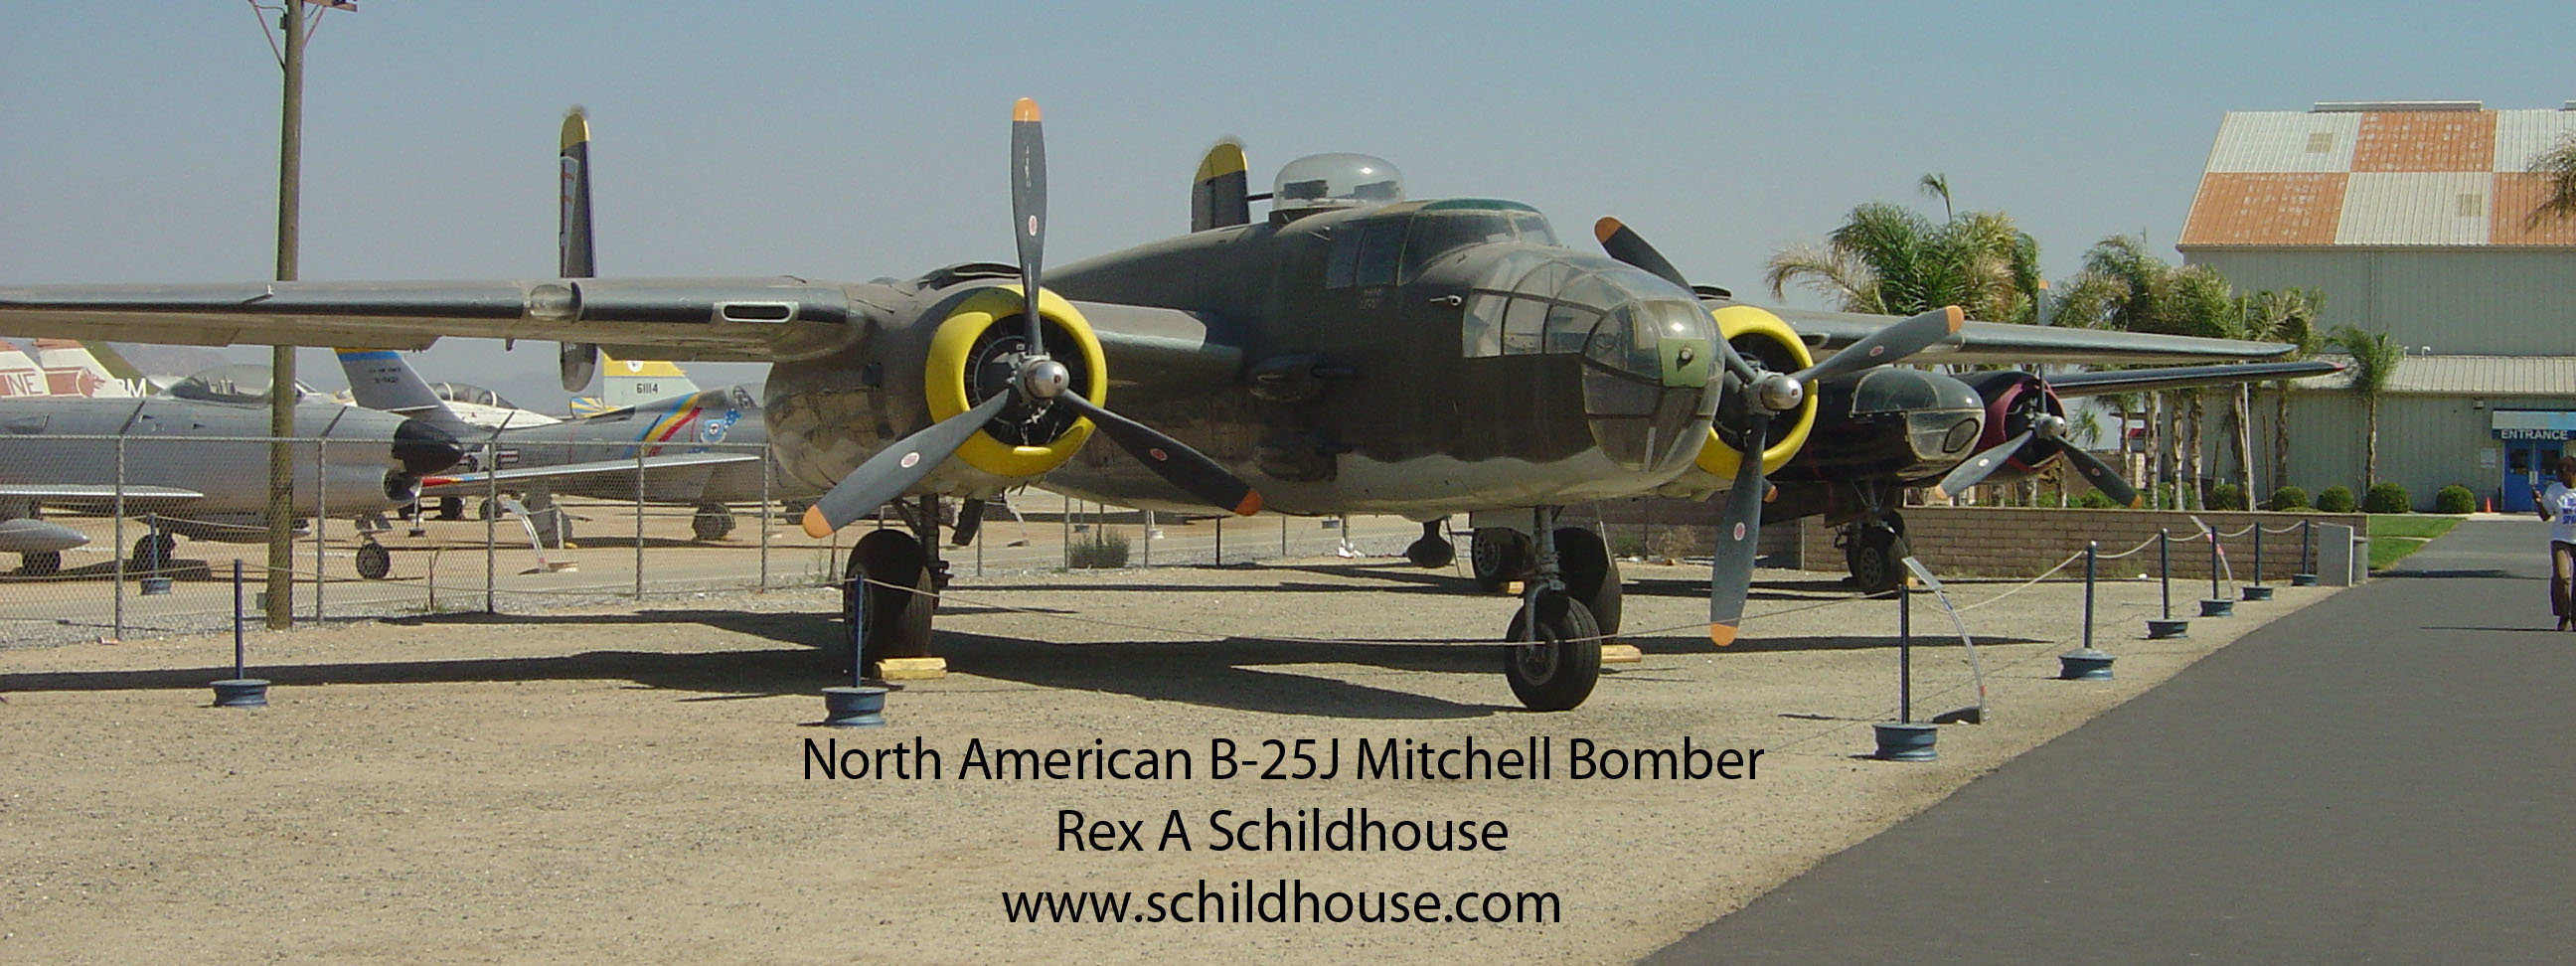 North American B-25J Mitchell Bomber